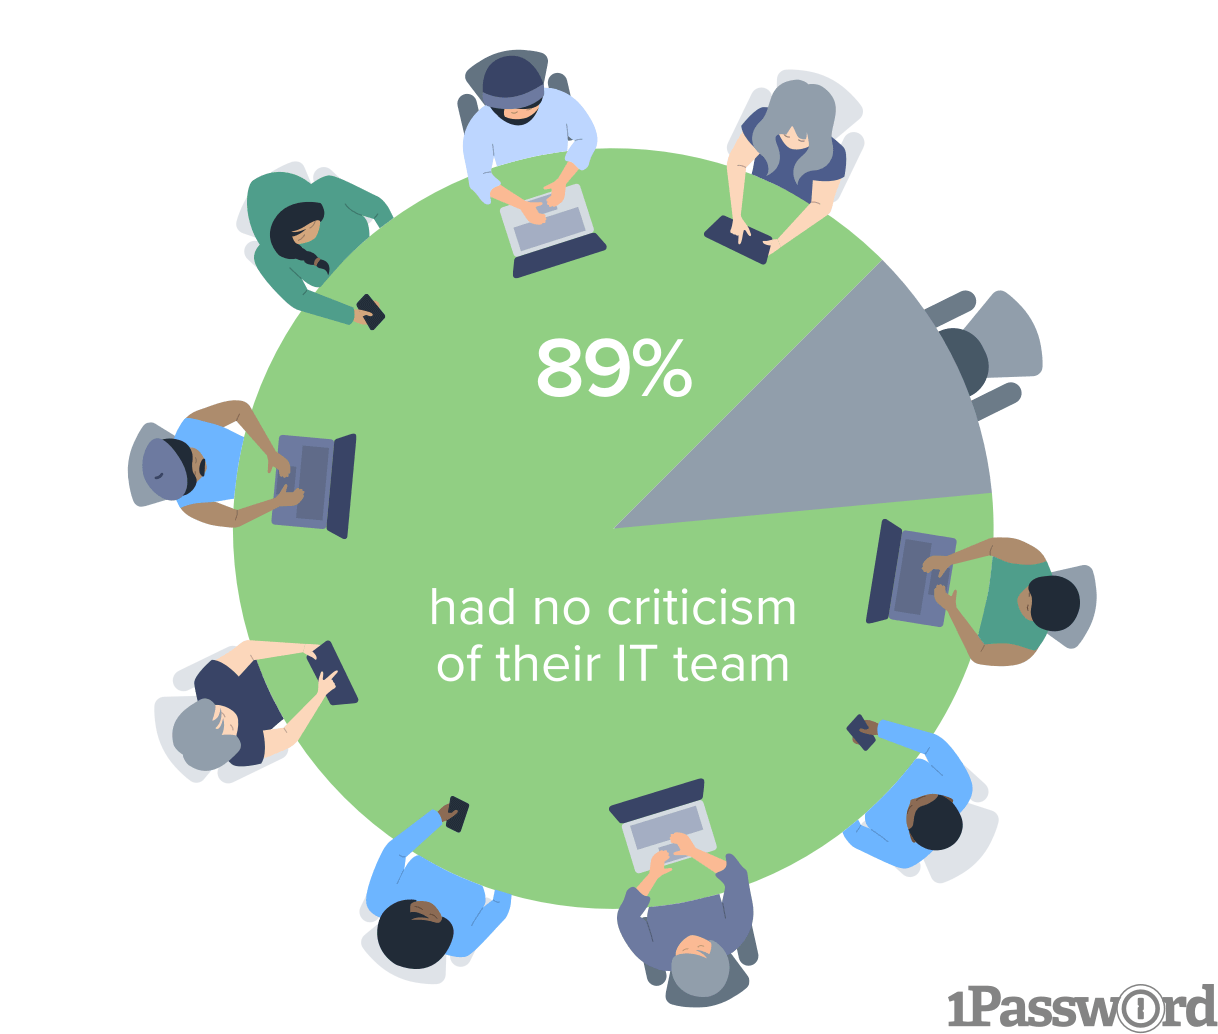 A big 89% of people looking happy about their IT teams